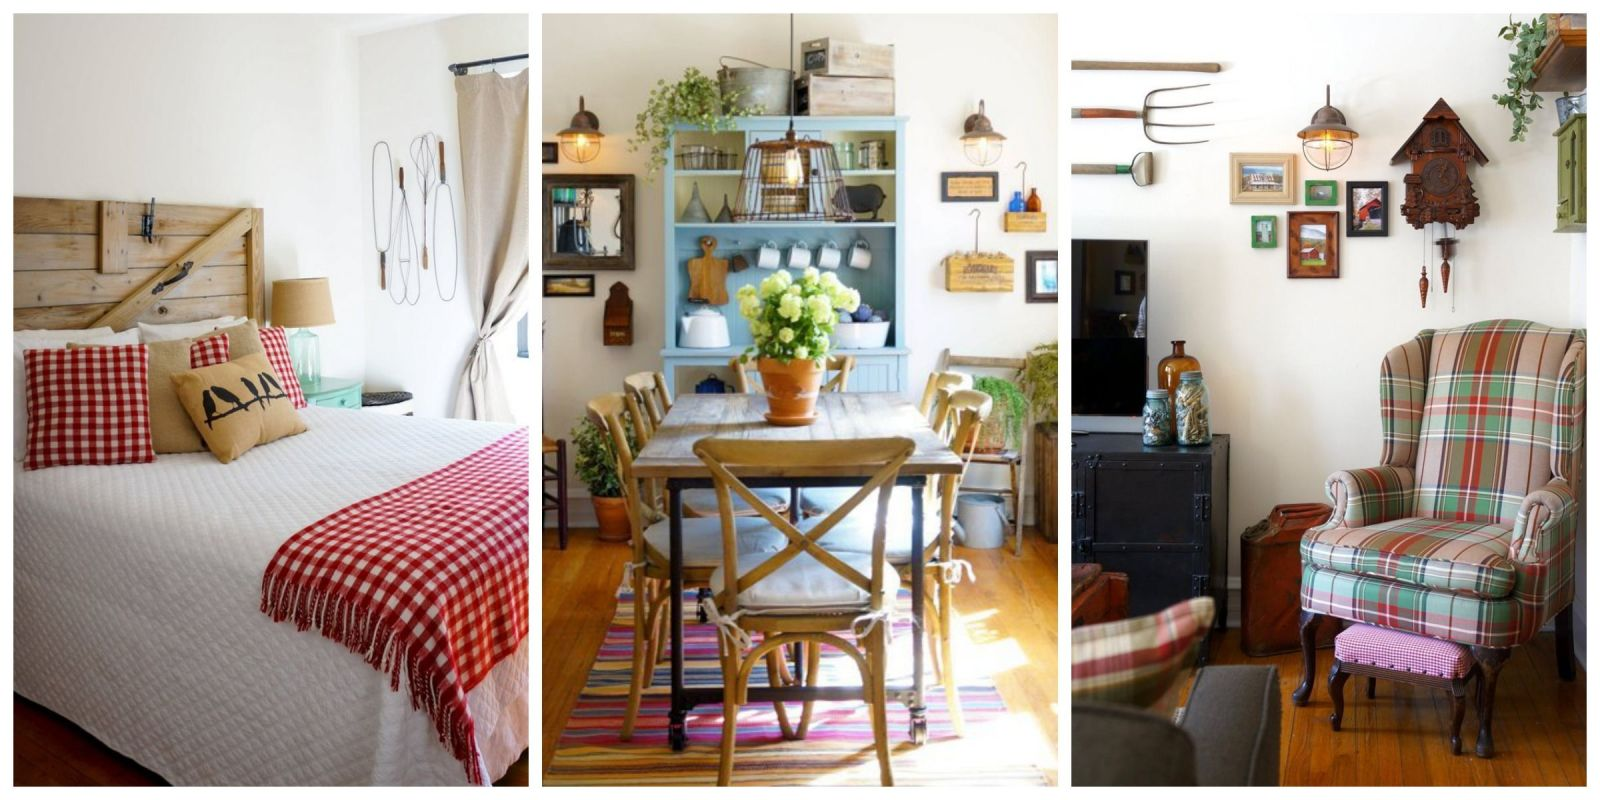 Home Decorating Ideas We 39re Crushing On The Primitive Country Decor In This City